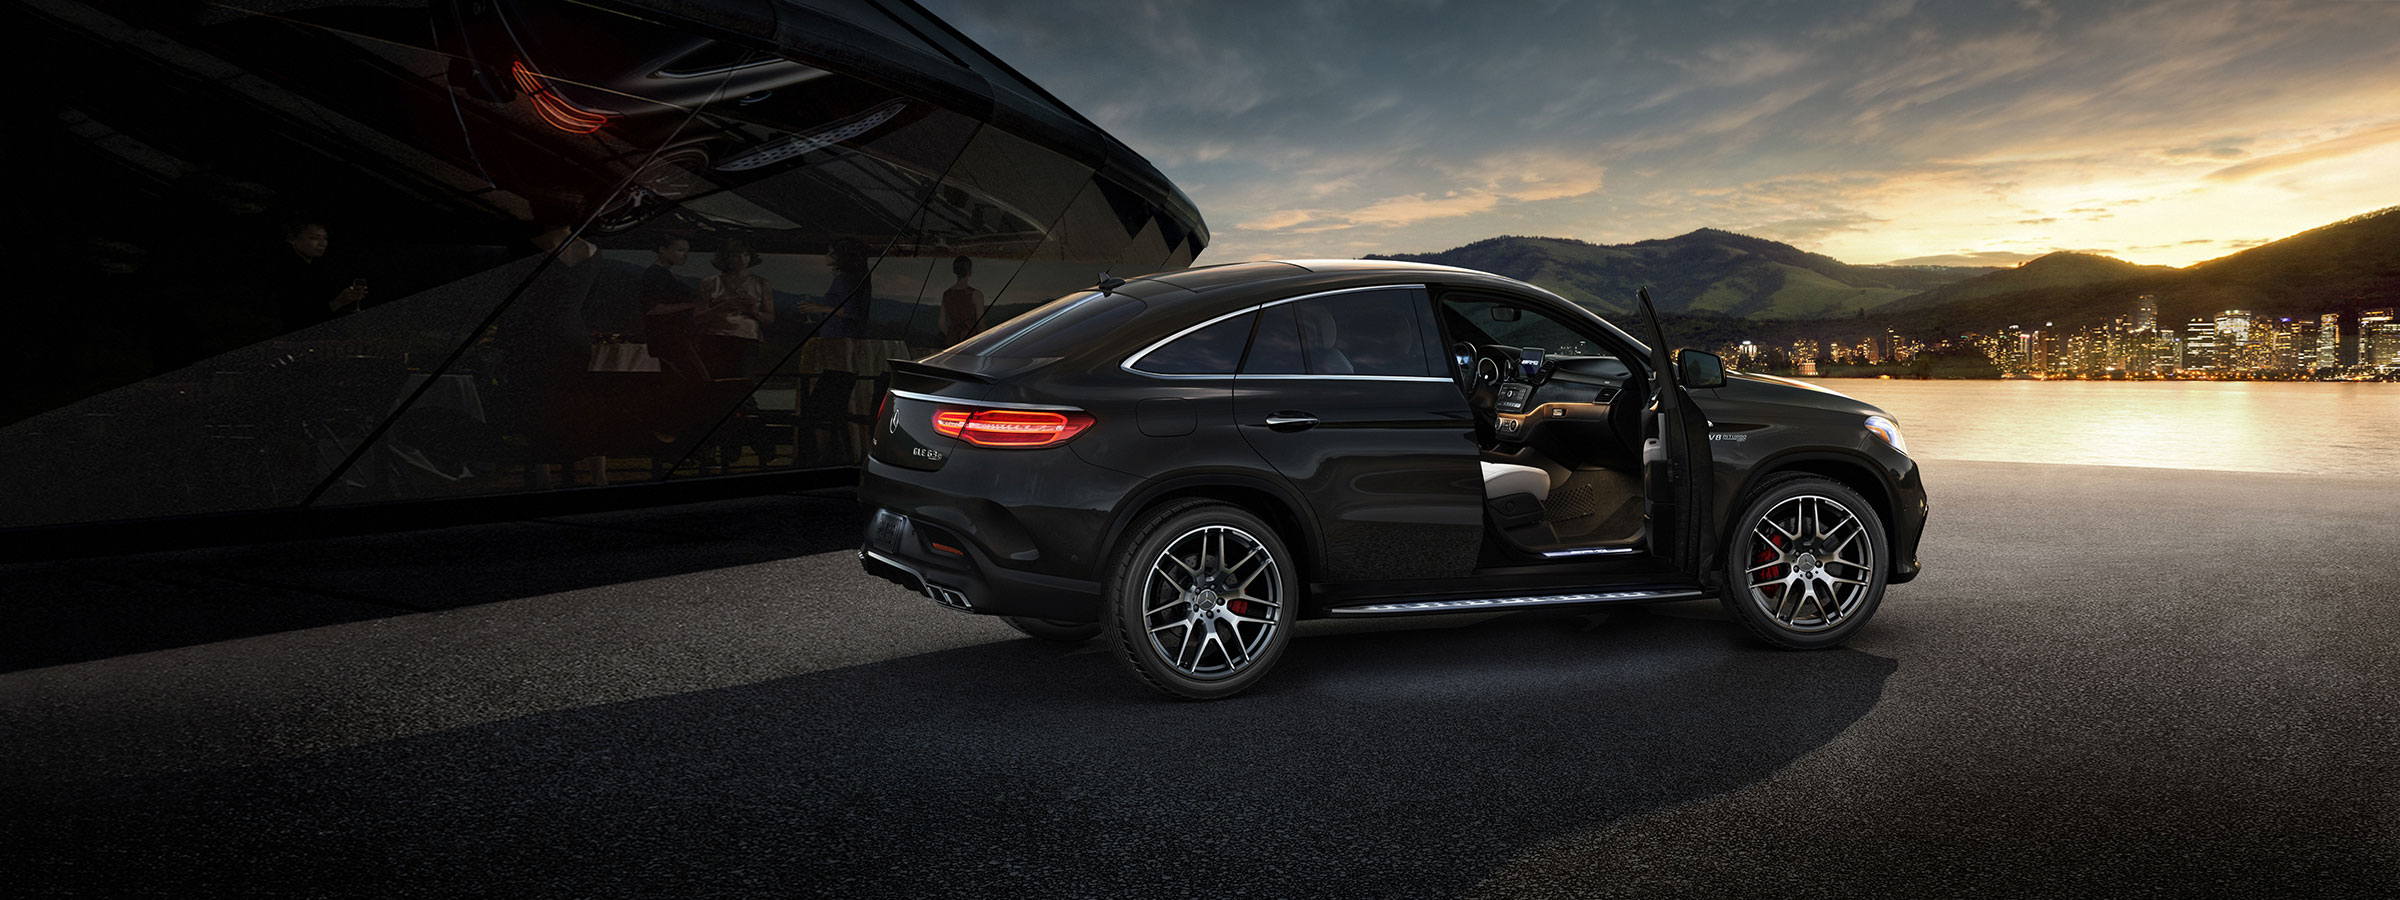 Coupé GLE 4MATIC Mercedes-AMG 2018